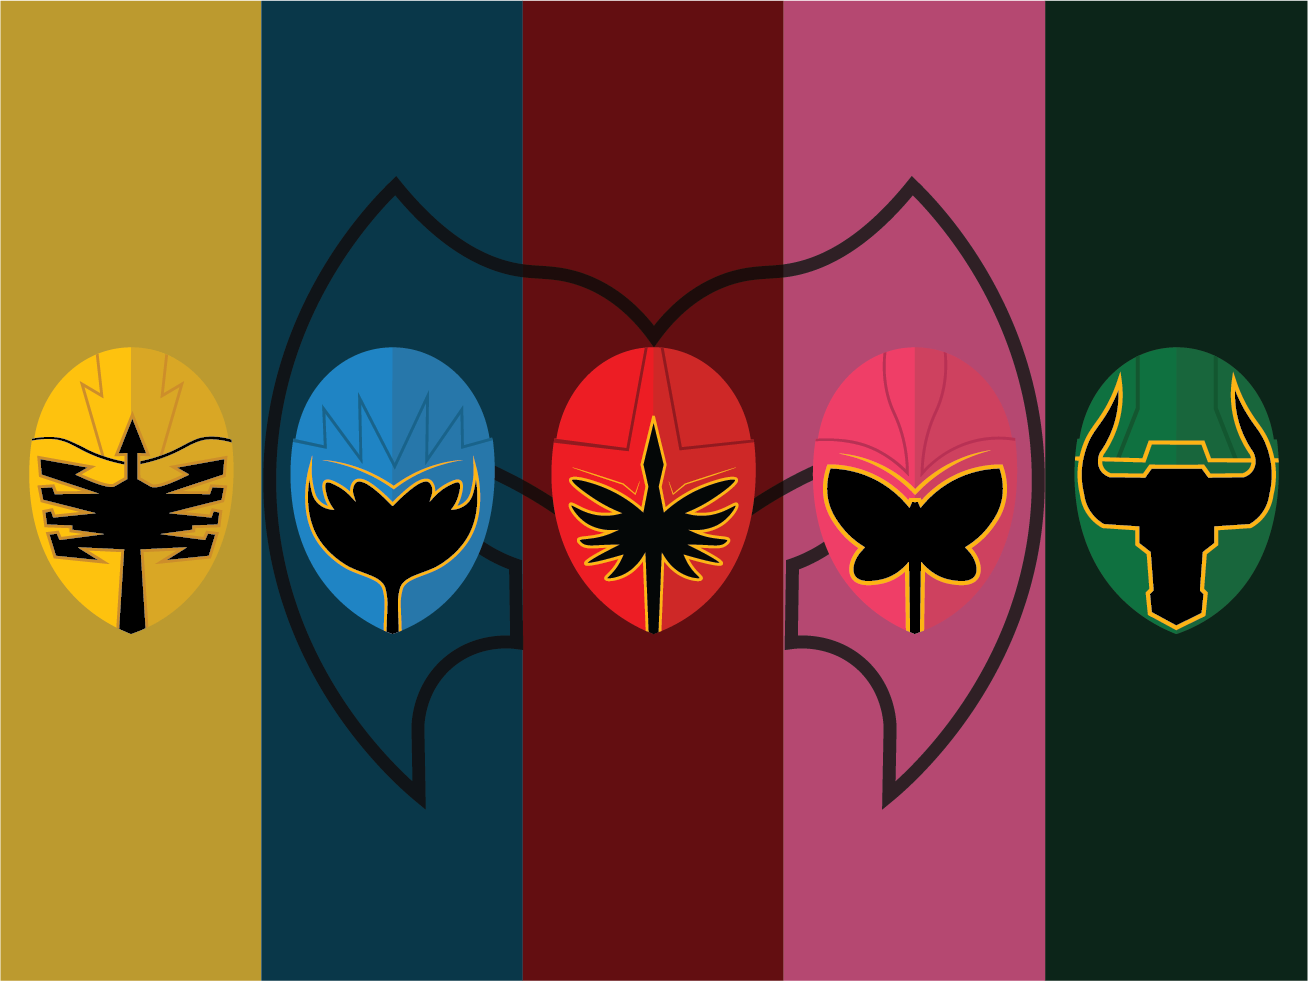 Power Rangers Mystic Force Illustration icon vector minimal illustrator logo adobeillustrator illustration flat design branding